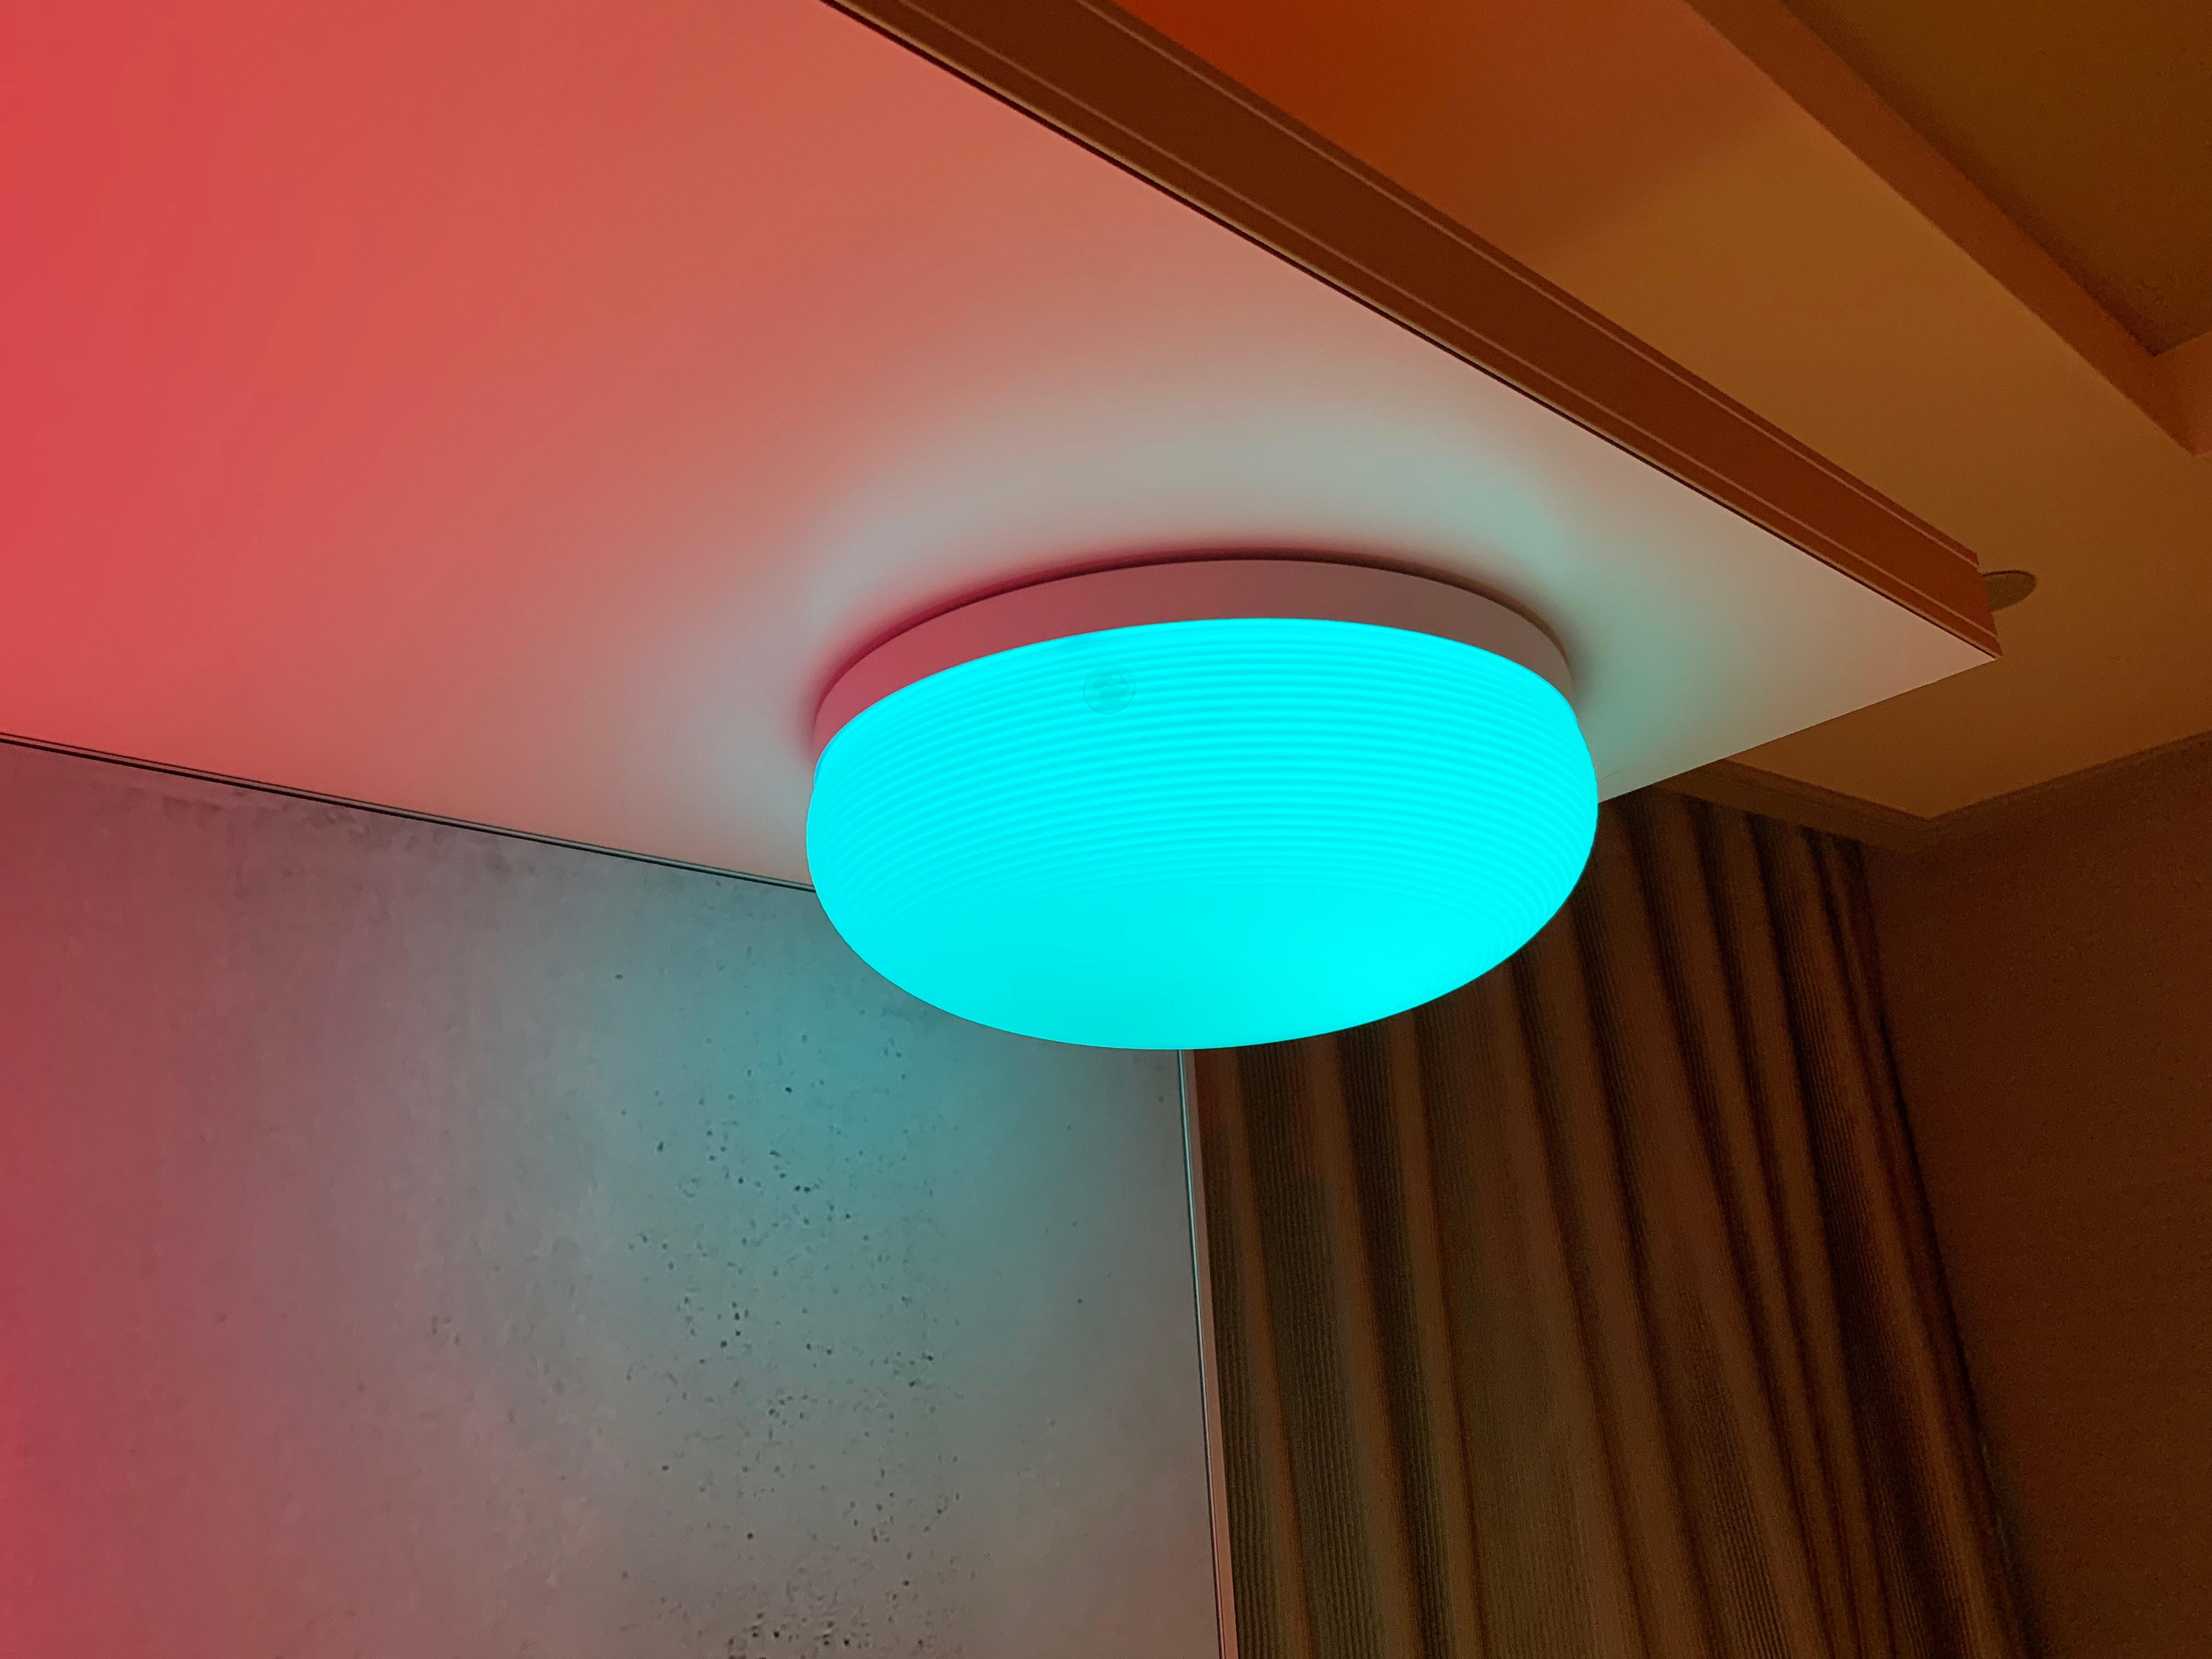 New Hue fixtures on the way